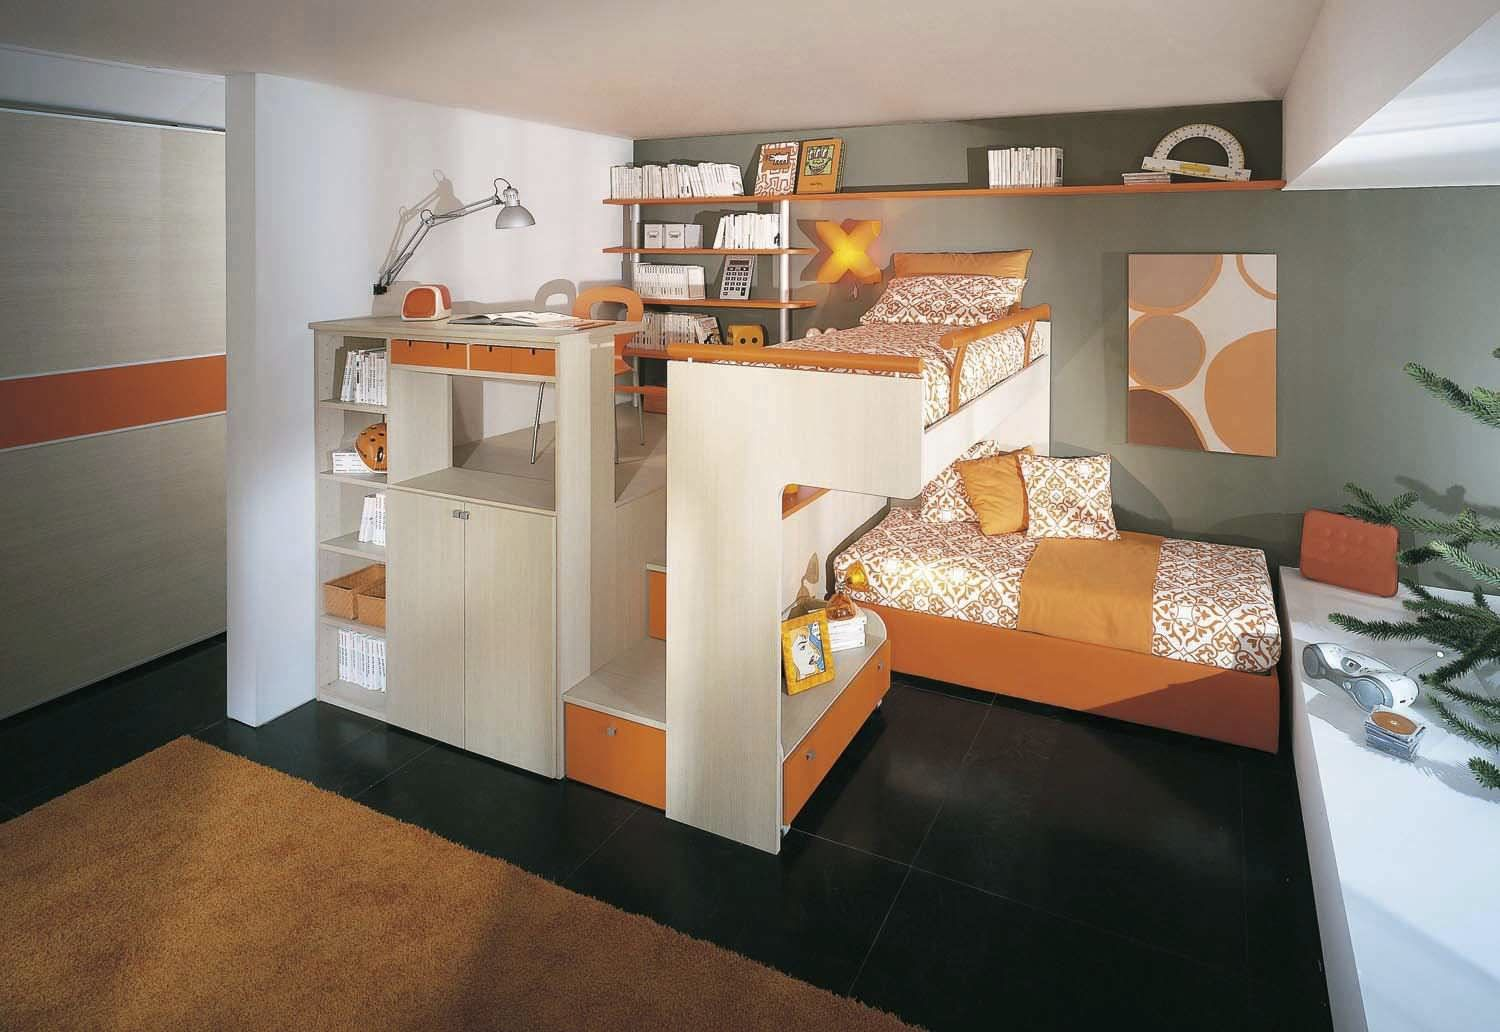 Chambre d 39 enfant mixte arcamagica 2 sangiorgio mobili ideas small bedroom home bedroom - Chambre enfants mixte ...